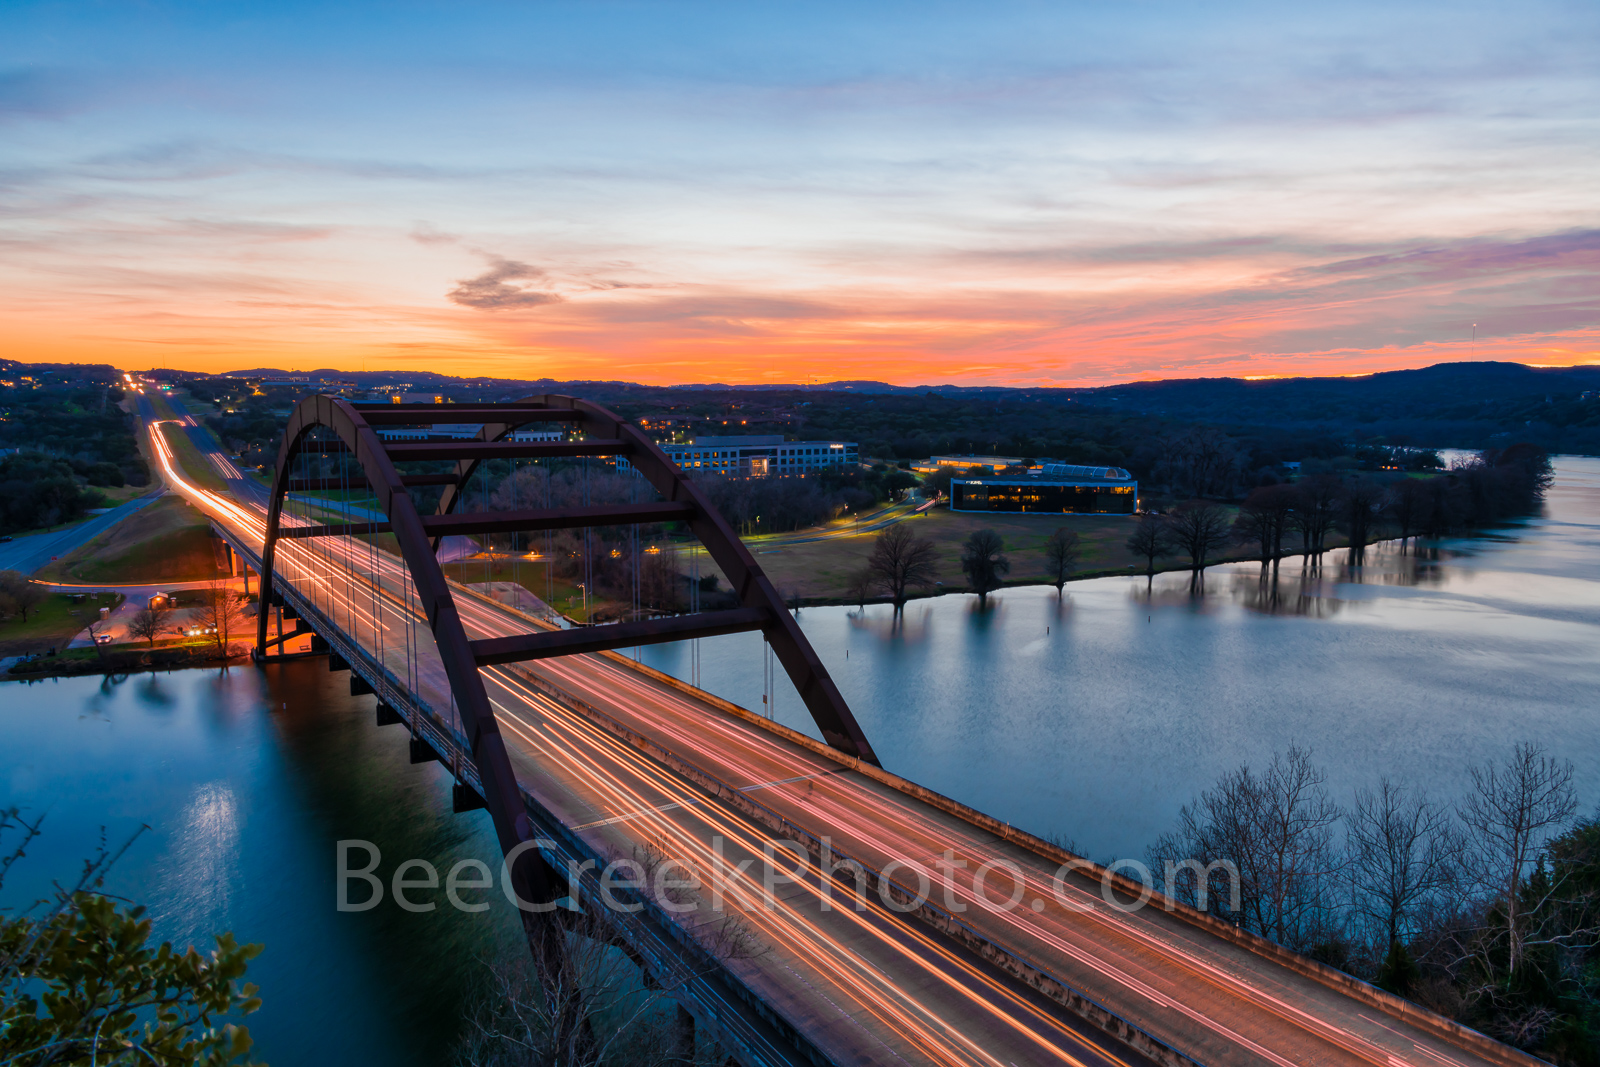 Austin, Pennybacker, bridge, 360 bridge,night, dark, sunset, Lake Austin, colors, texas hill country, texas scenery, boats, hill country,  texas landscape, recreational, boating, swimming, picnicing,